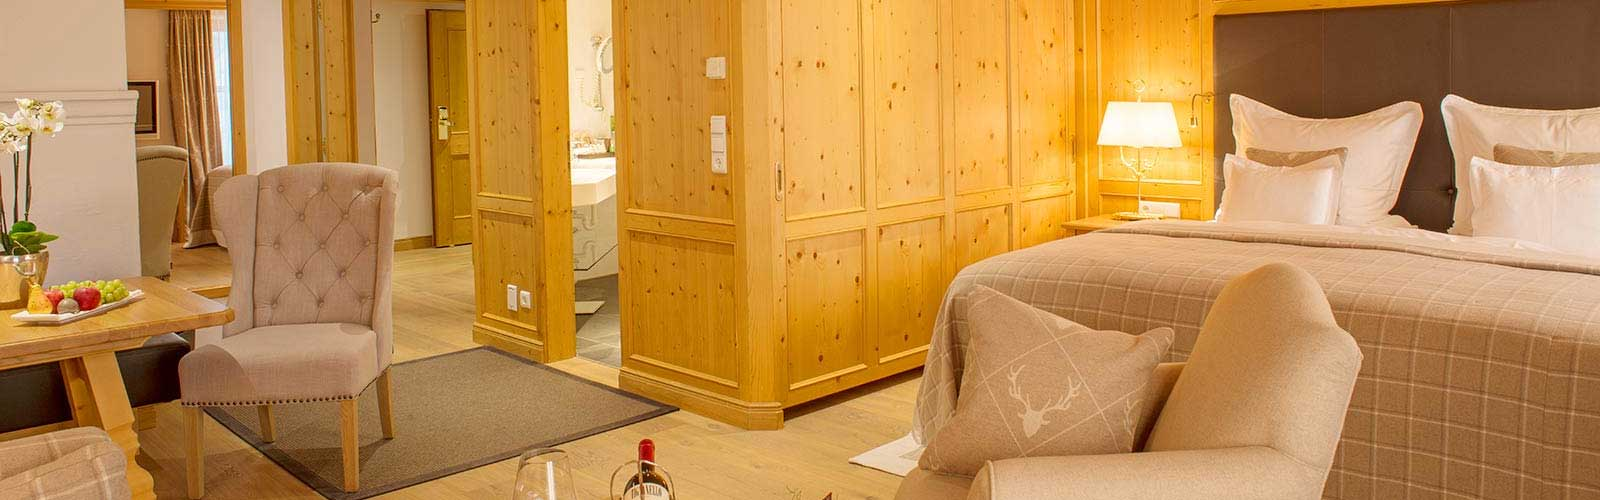 Junior Suite, 45 m2